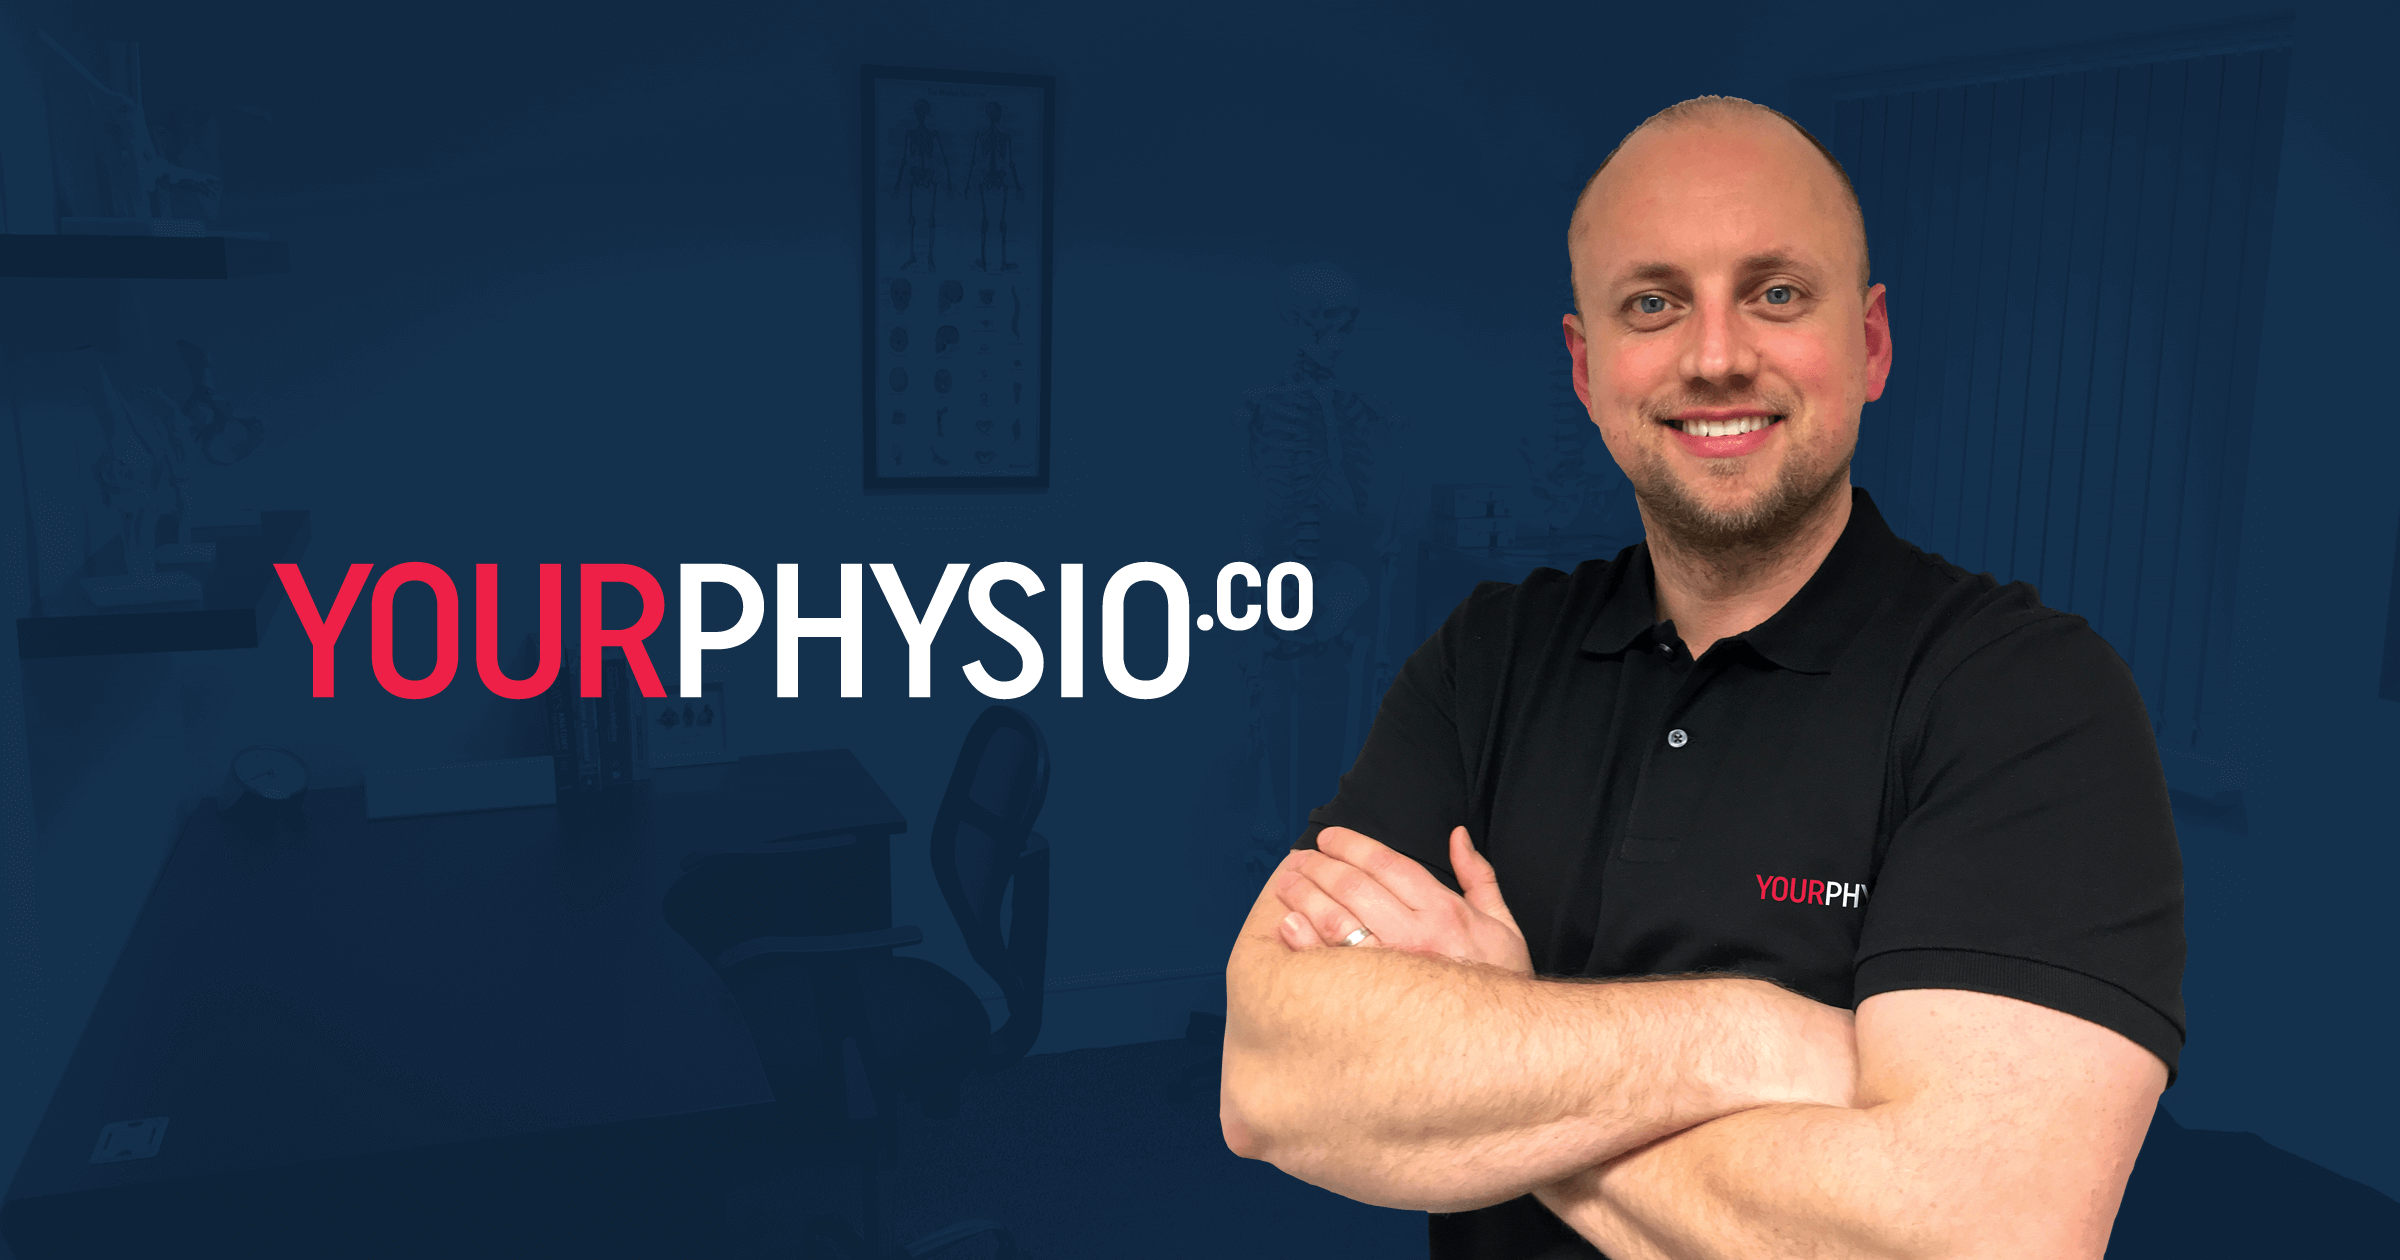 Your Physio branding